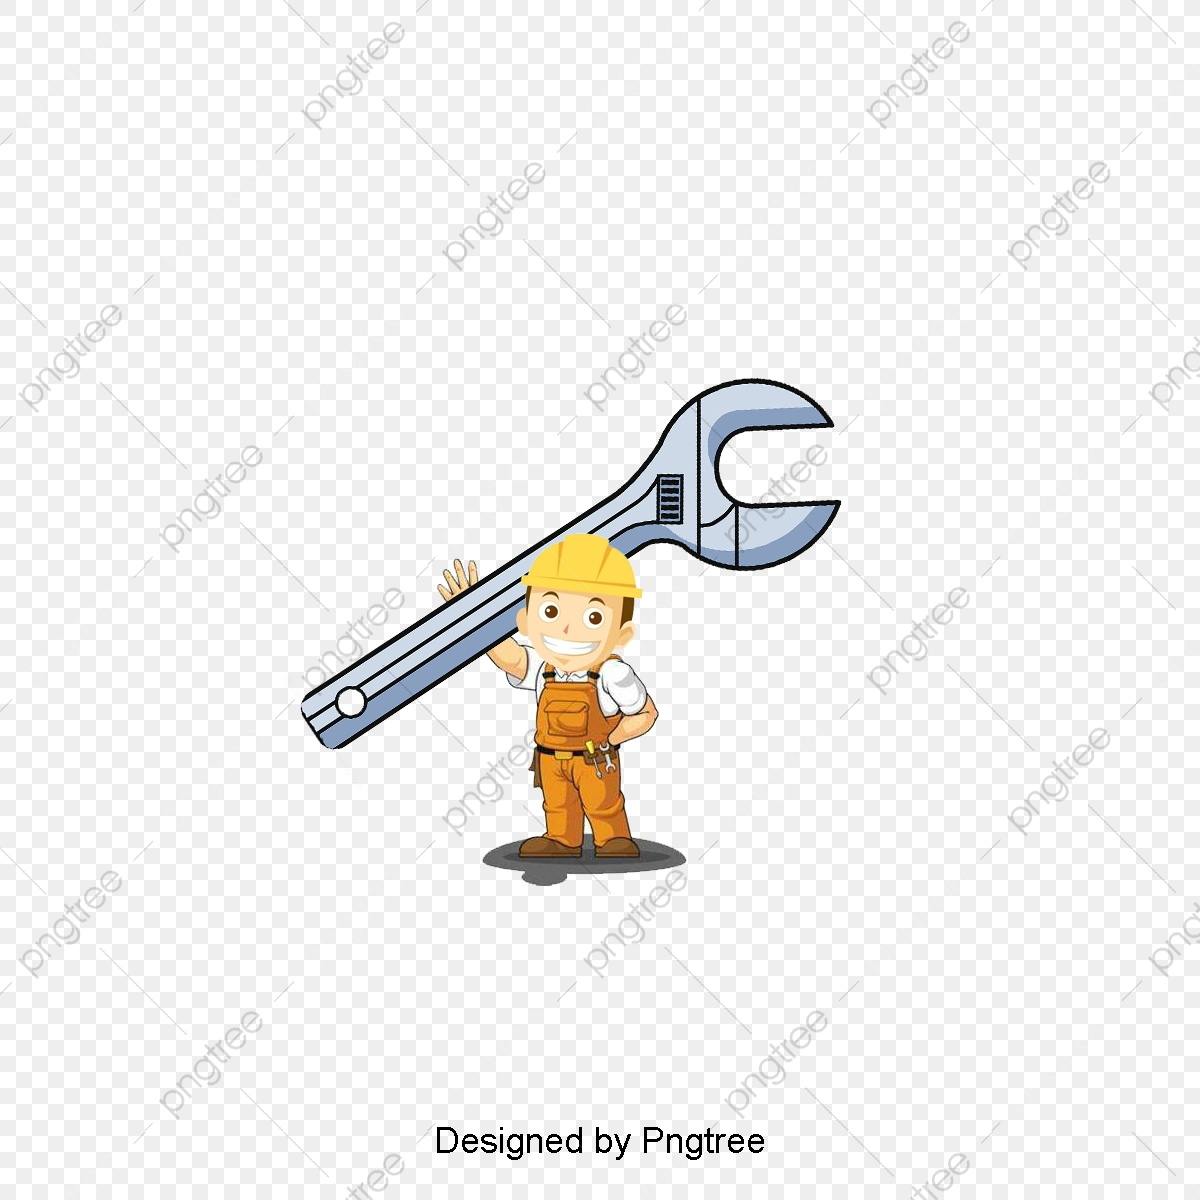 Cartoon Plumber, Cartoon Clipart, Plumber Clipart, Carrying Tools